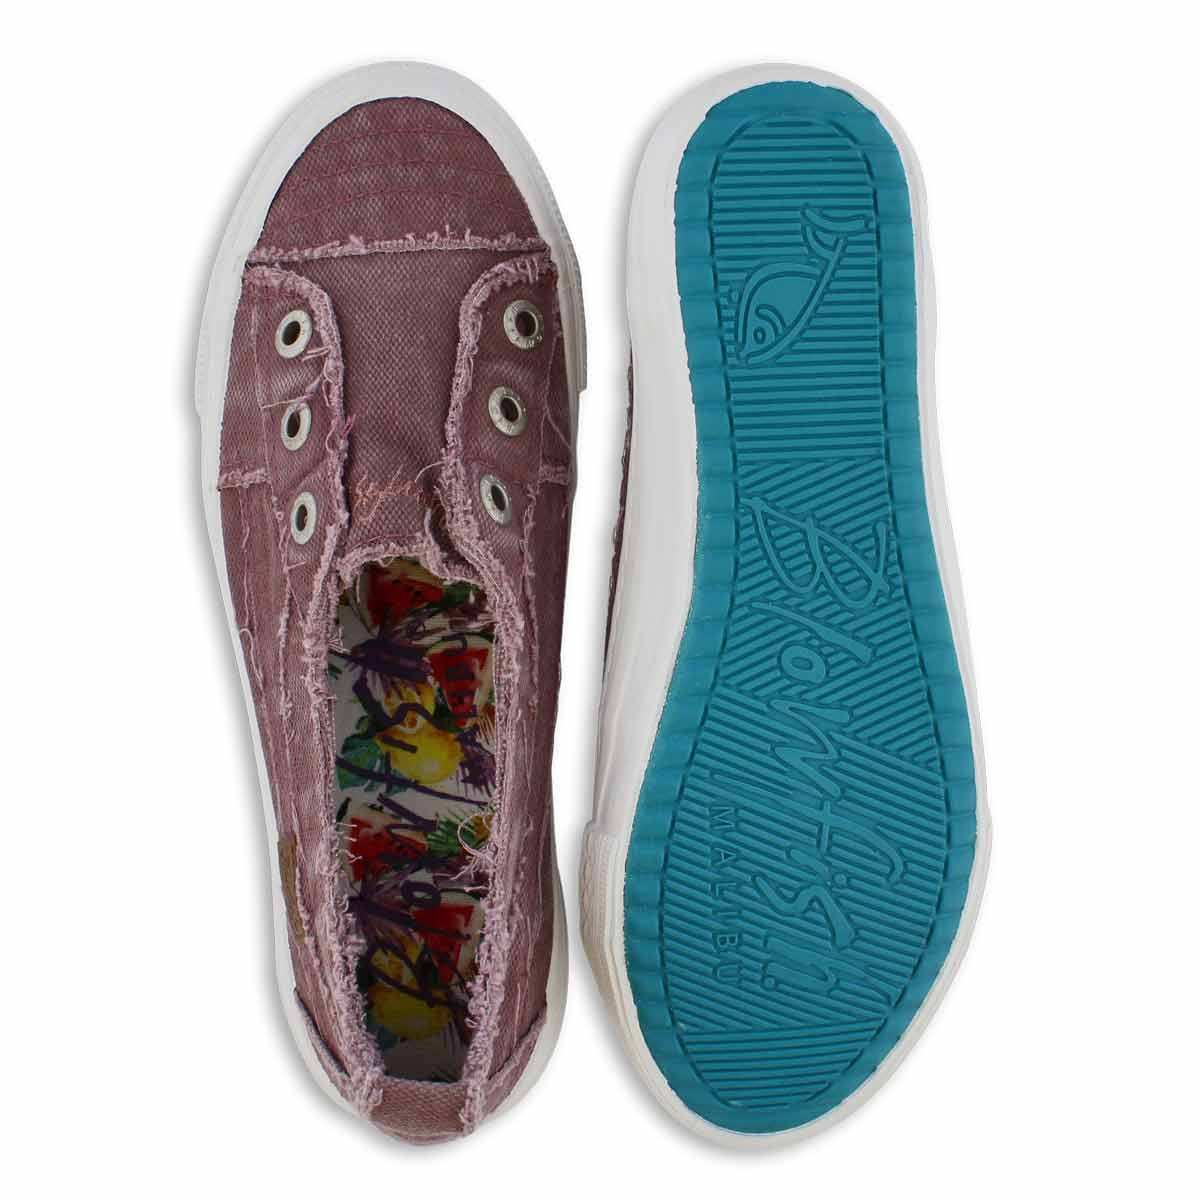 Lds Aussie lav slip on fashion sneakers